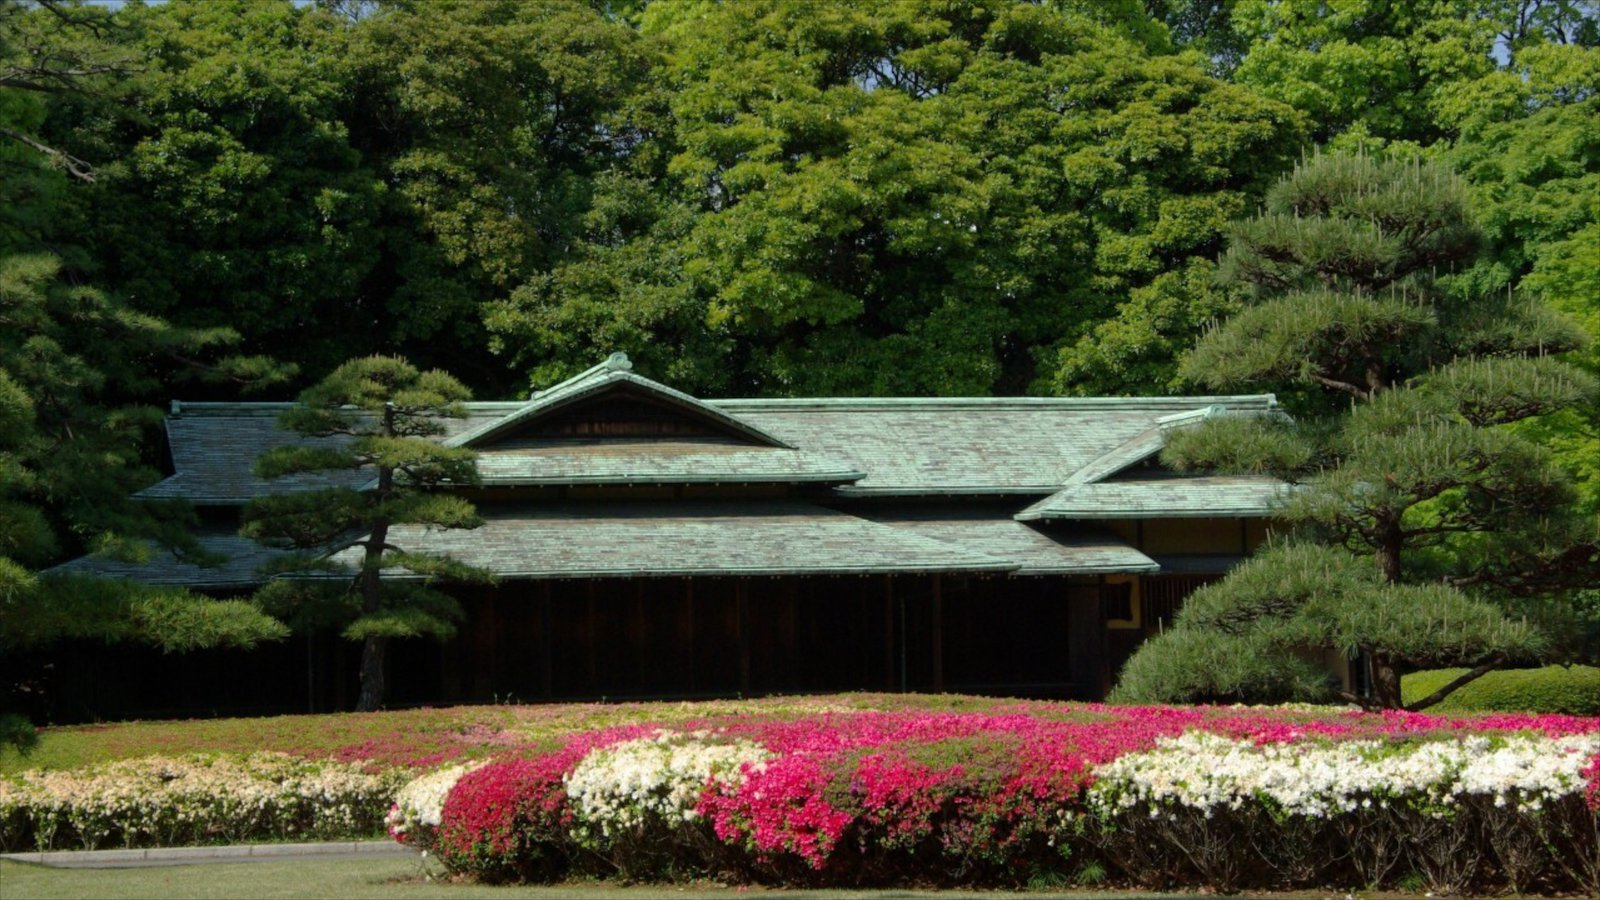 Tokyo Imperial Palace showing a castle and flowers